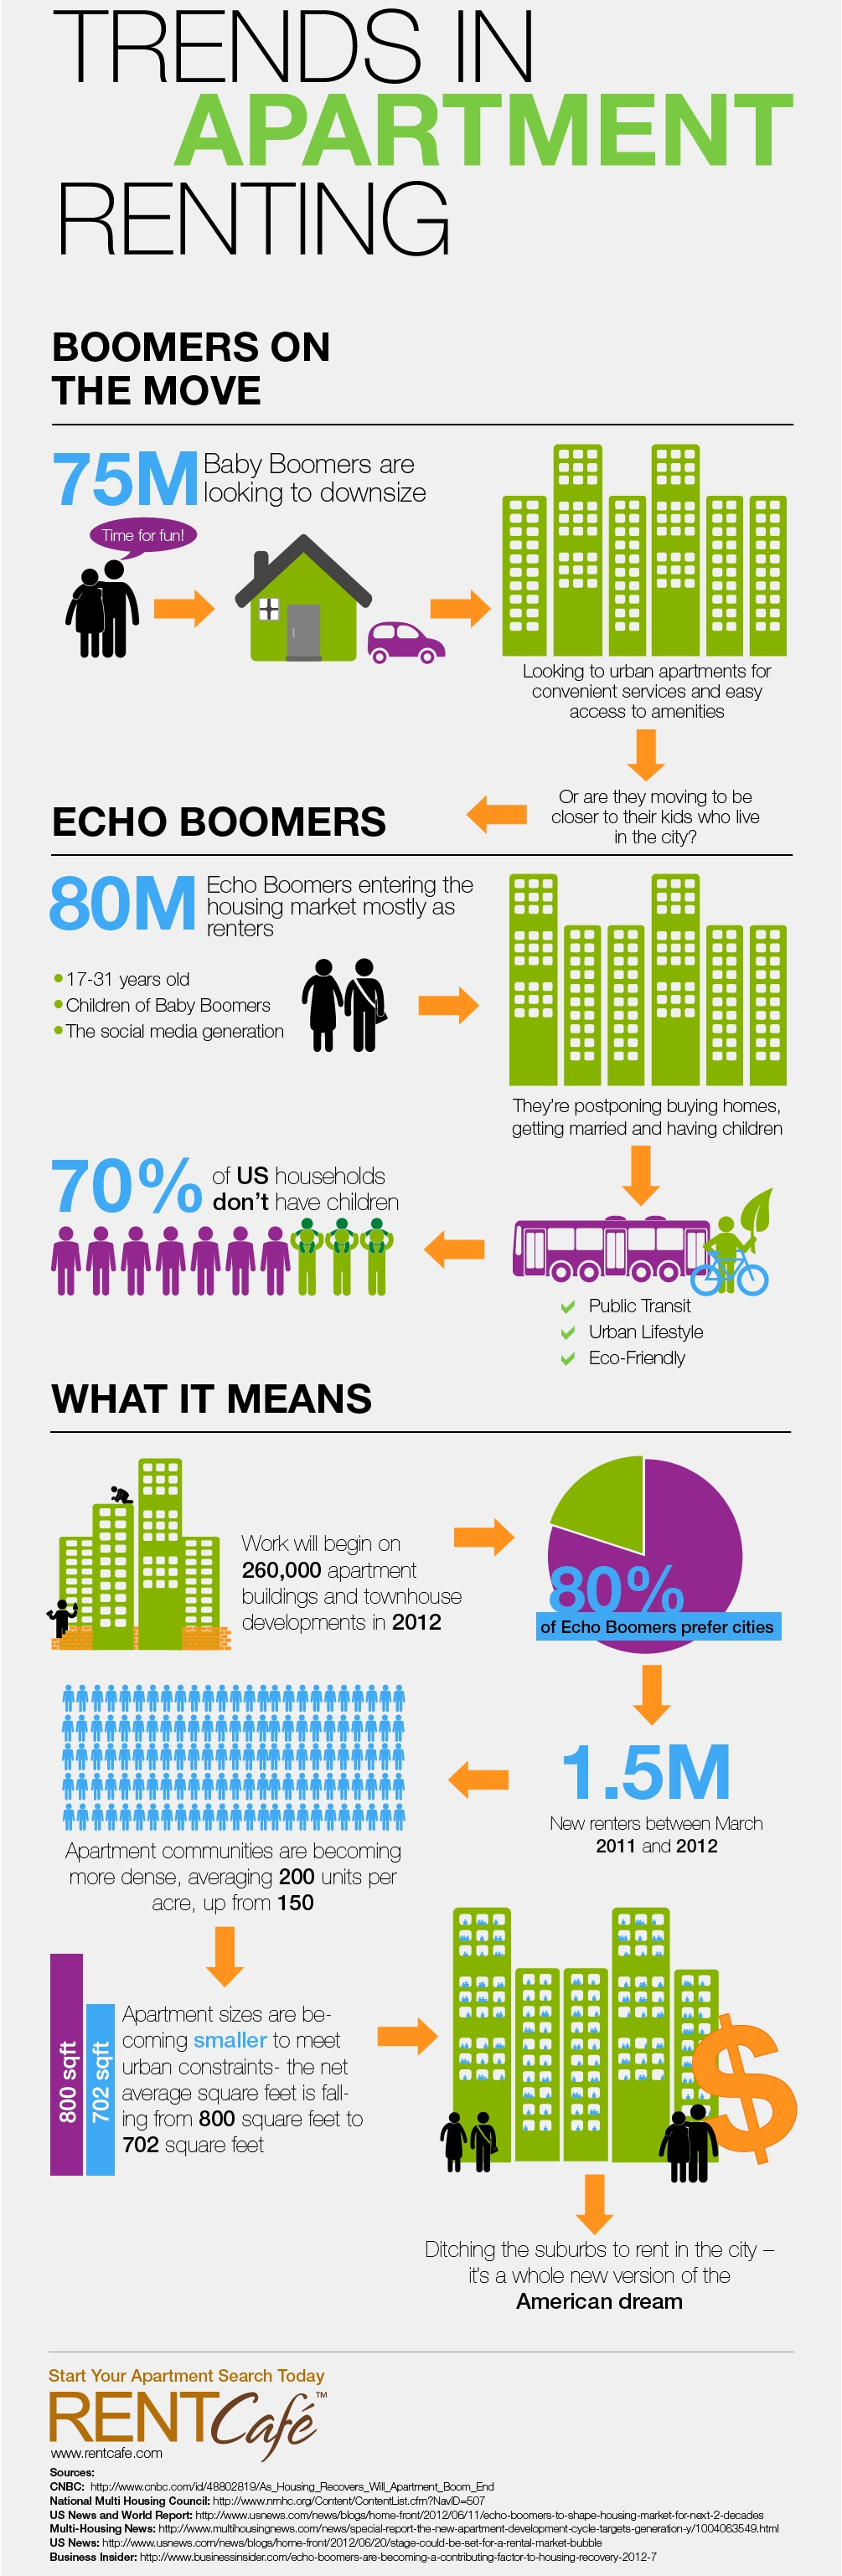 trends-in-apartment-renting_50731e1020910